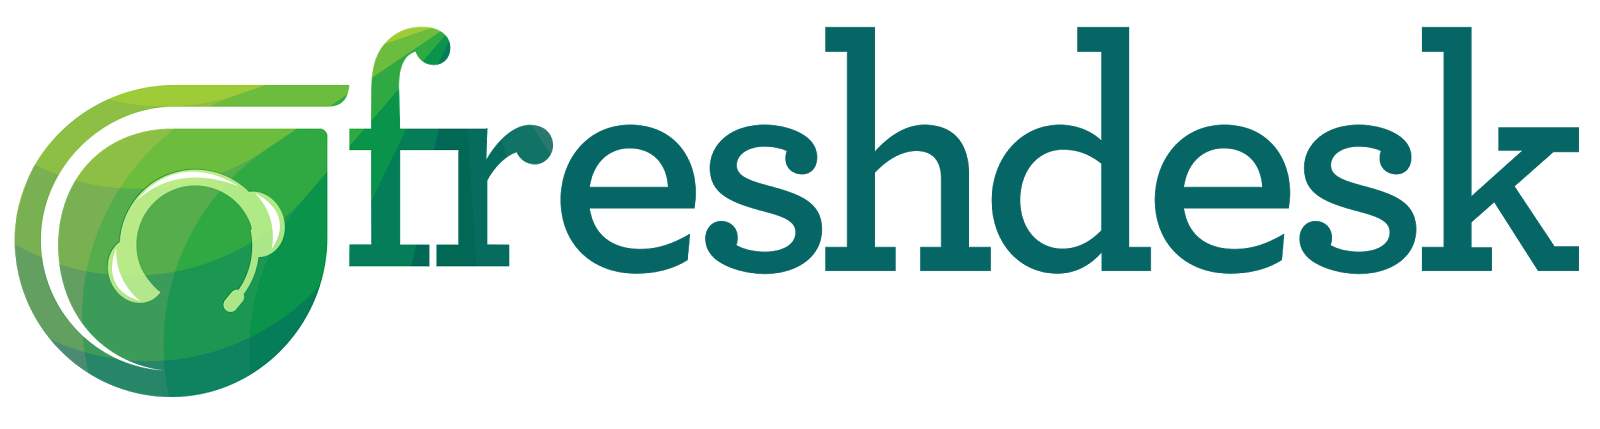 Freshdesk Customer Support Software logo